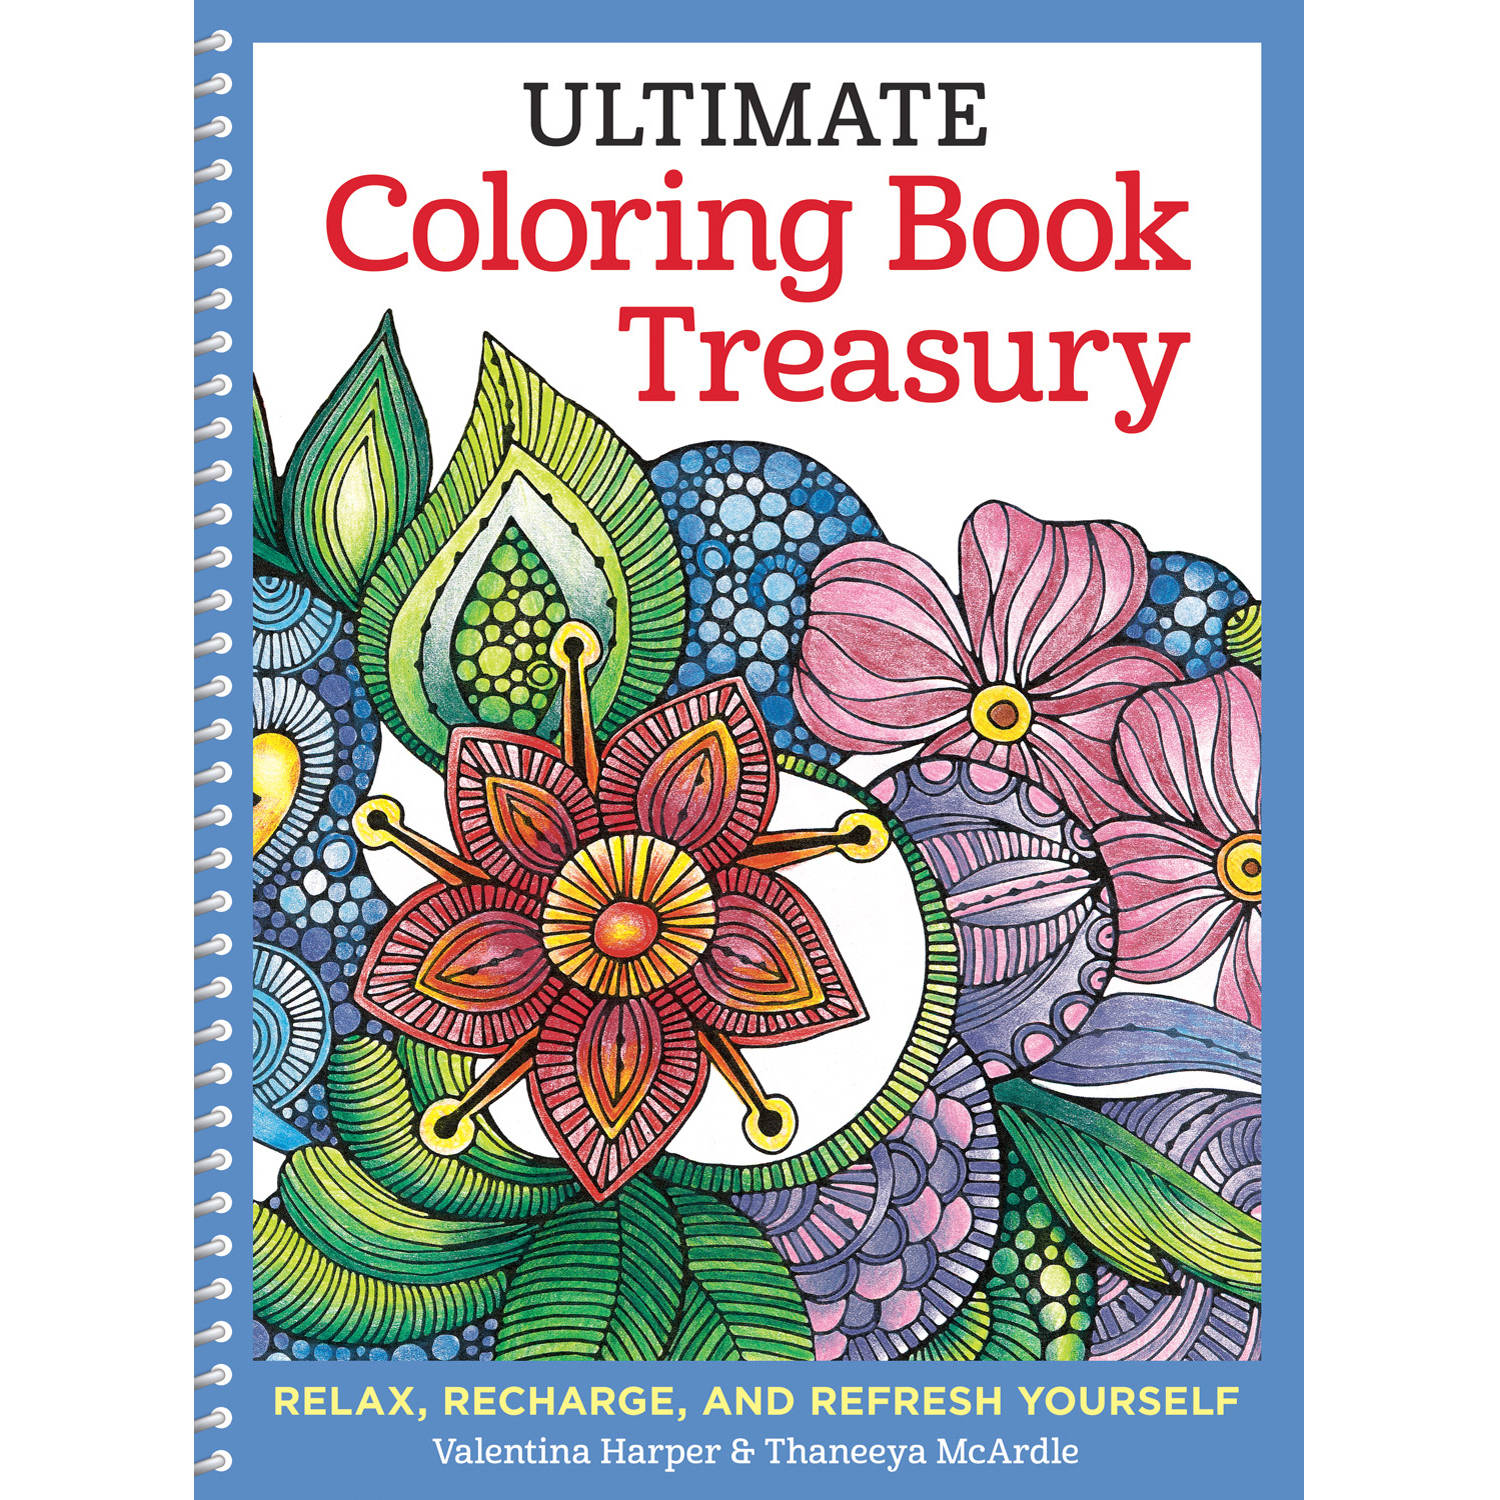 Color book party mn - Ultimate Coloring Book Treasury